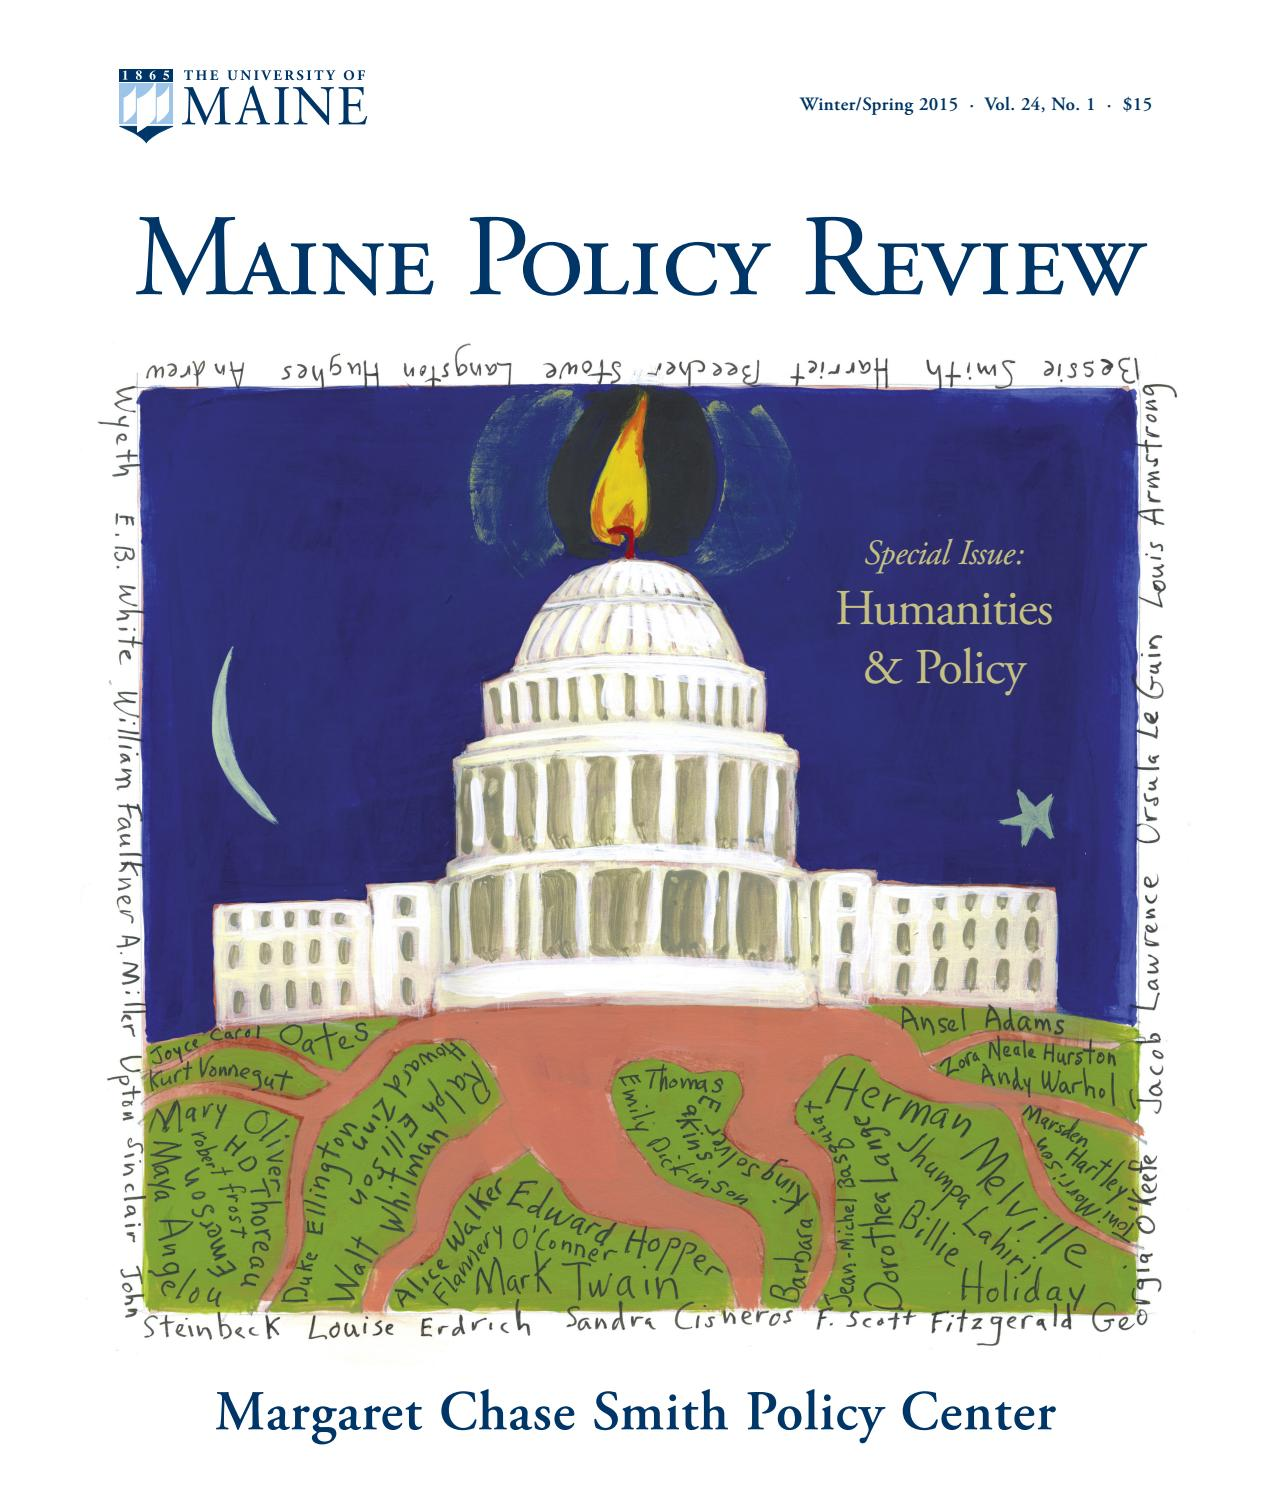 Maine Policy Review Winter/Spring 2015 by University of